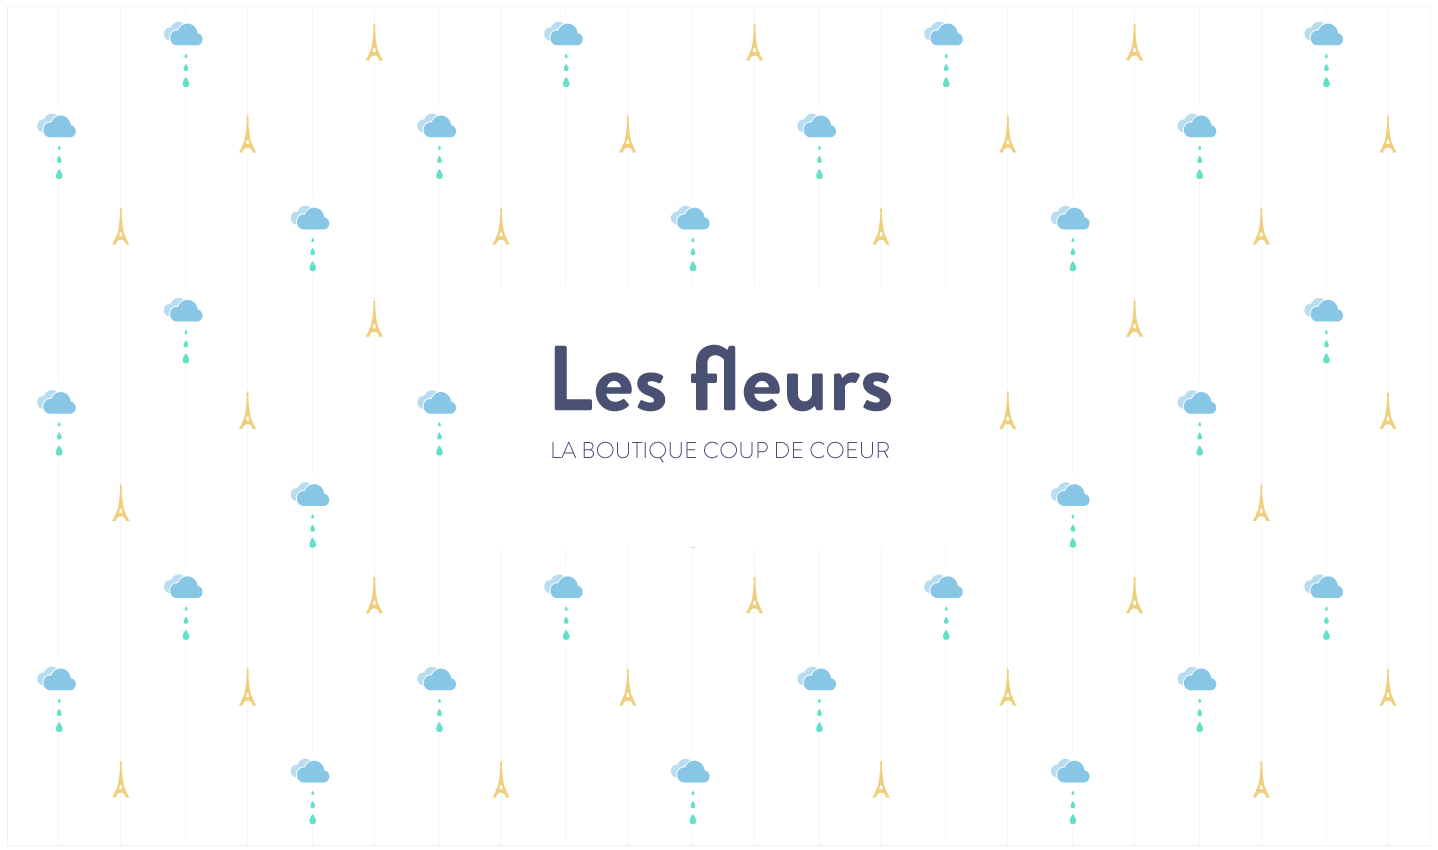 paris-lesfleurs